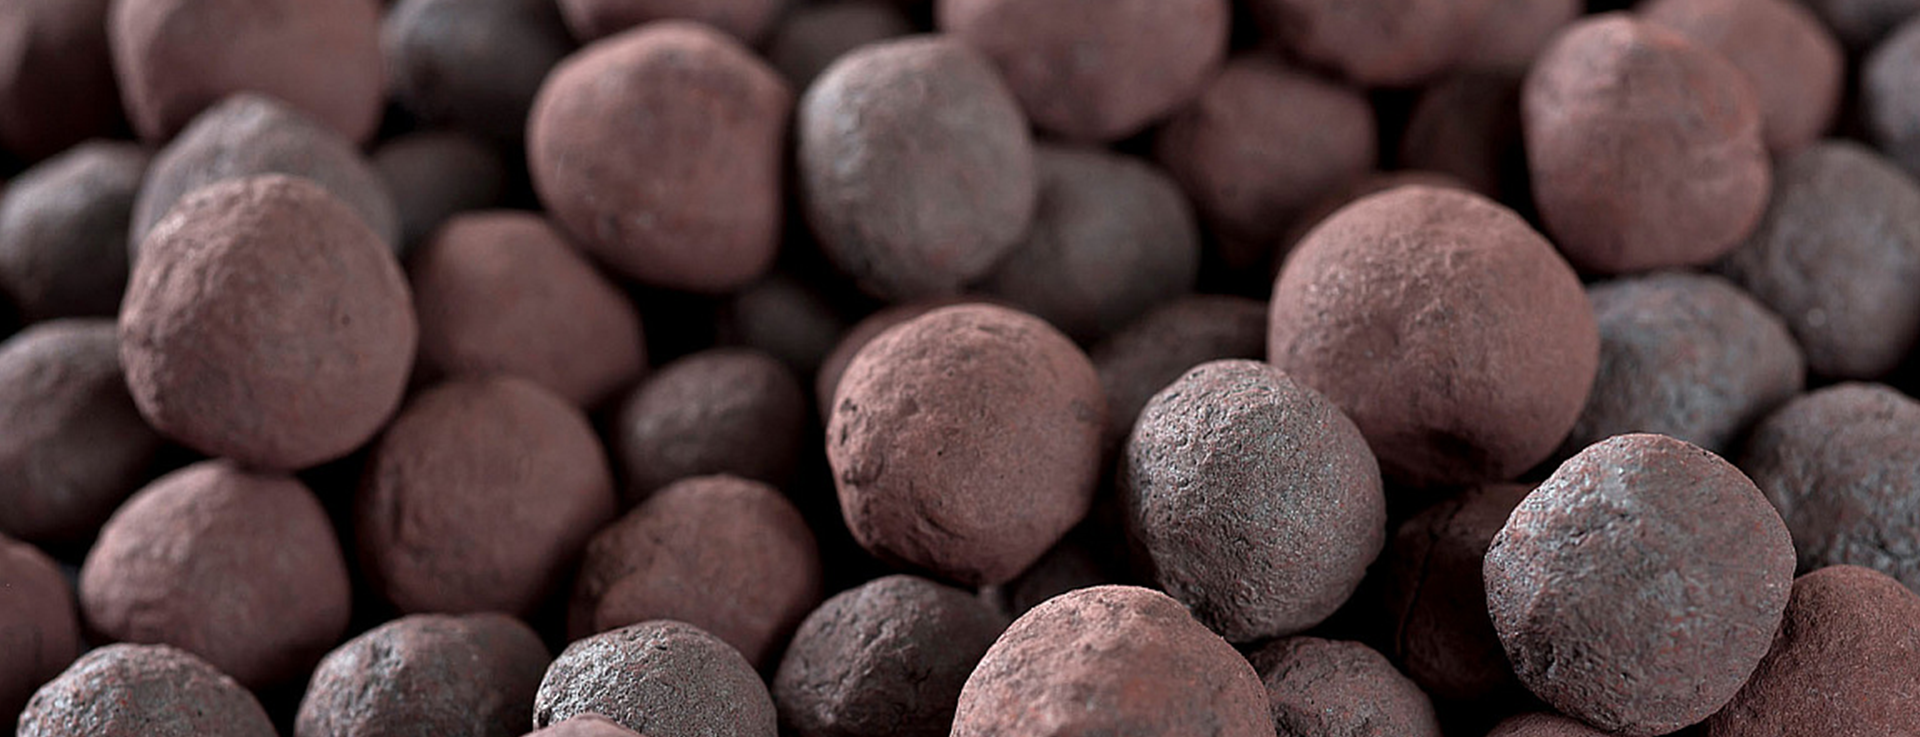 https://www.yglibay.com/wp-content/uploads/2020/01/iron-ore.png